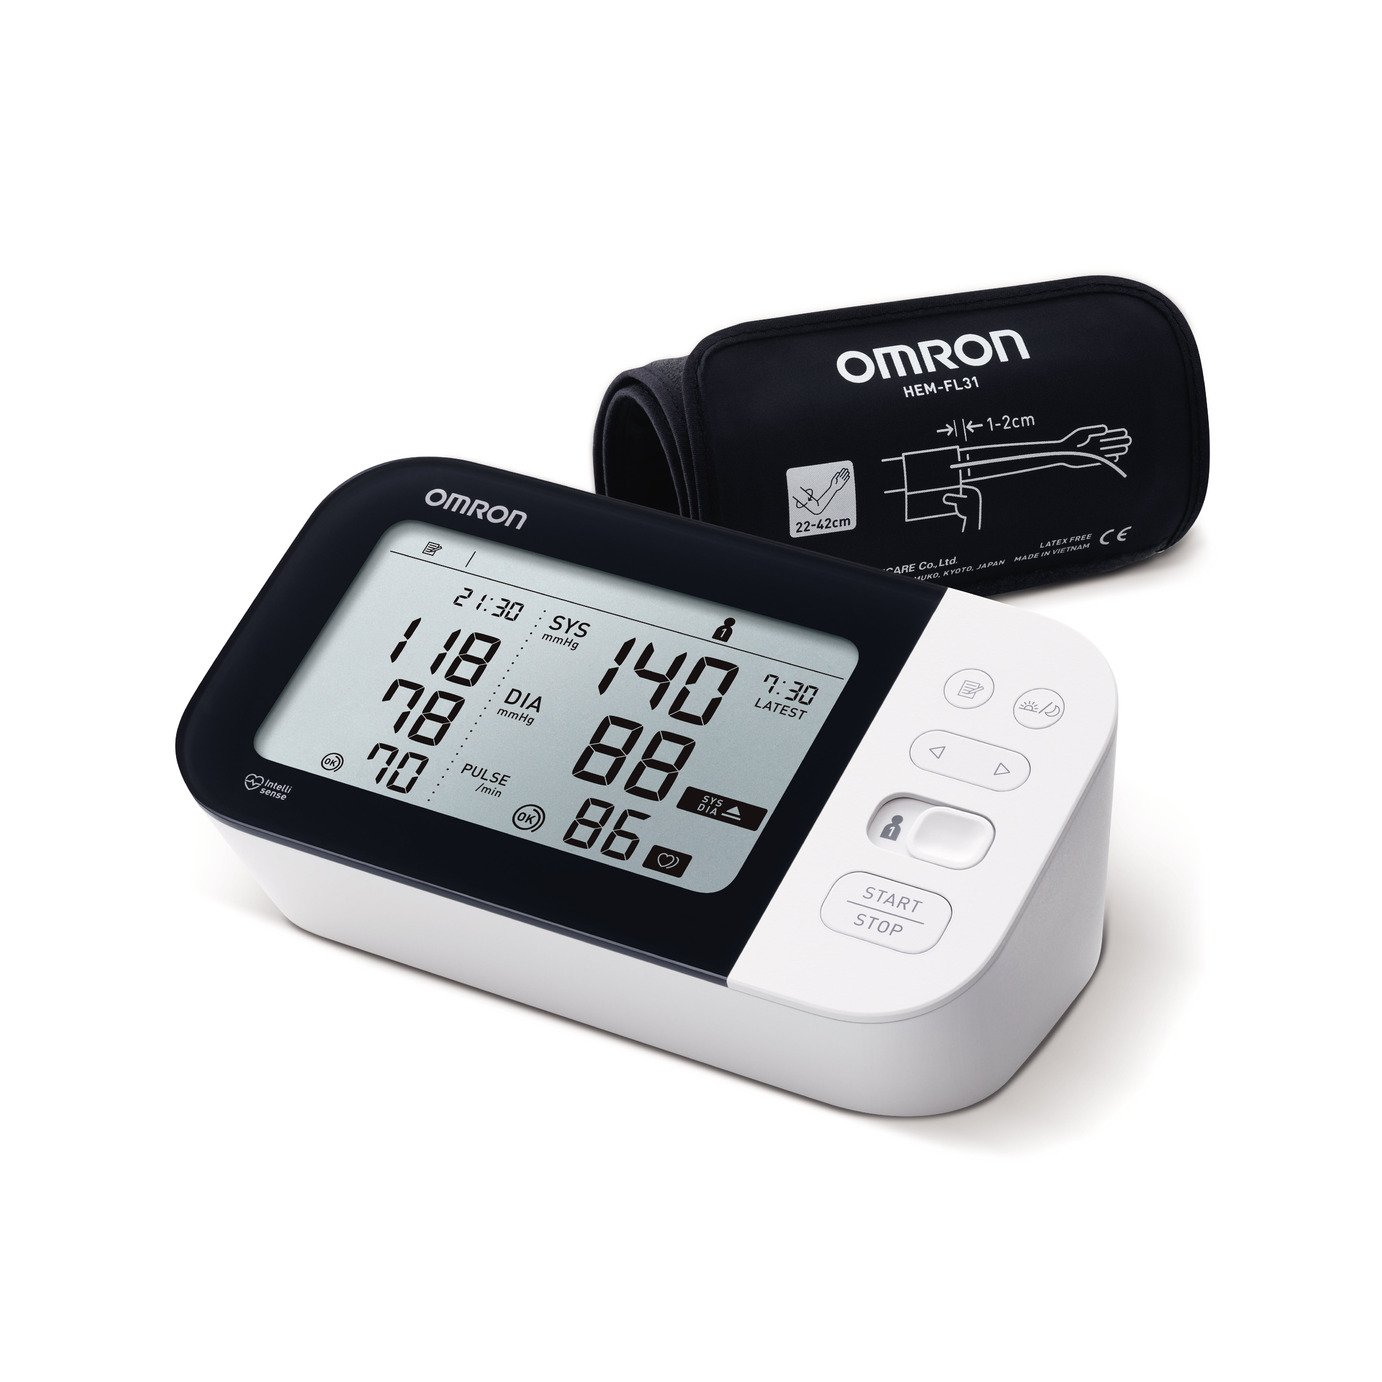 Omron Blood Pressure Monitor M7 INTELLI IT (HEM-7361T-EBK)